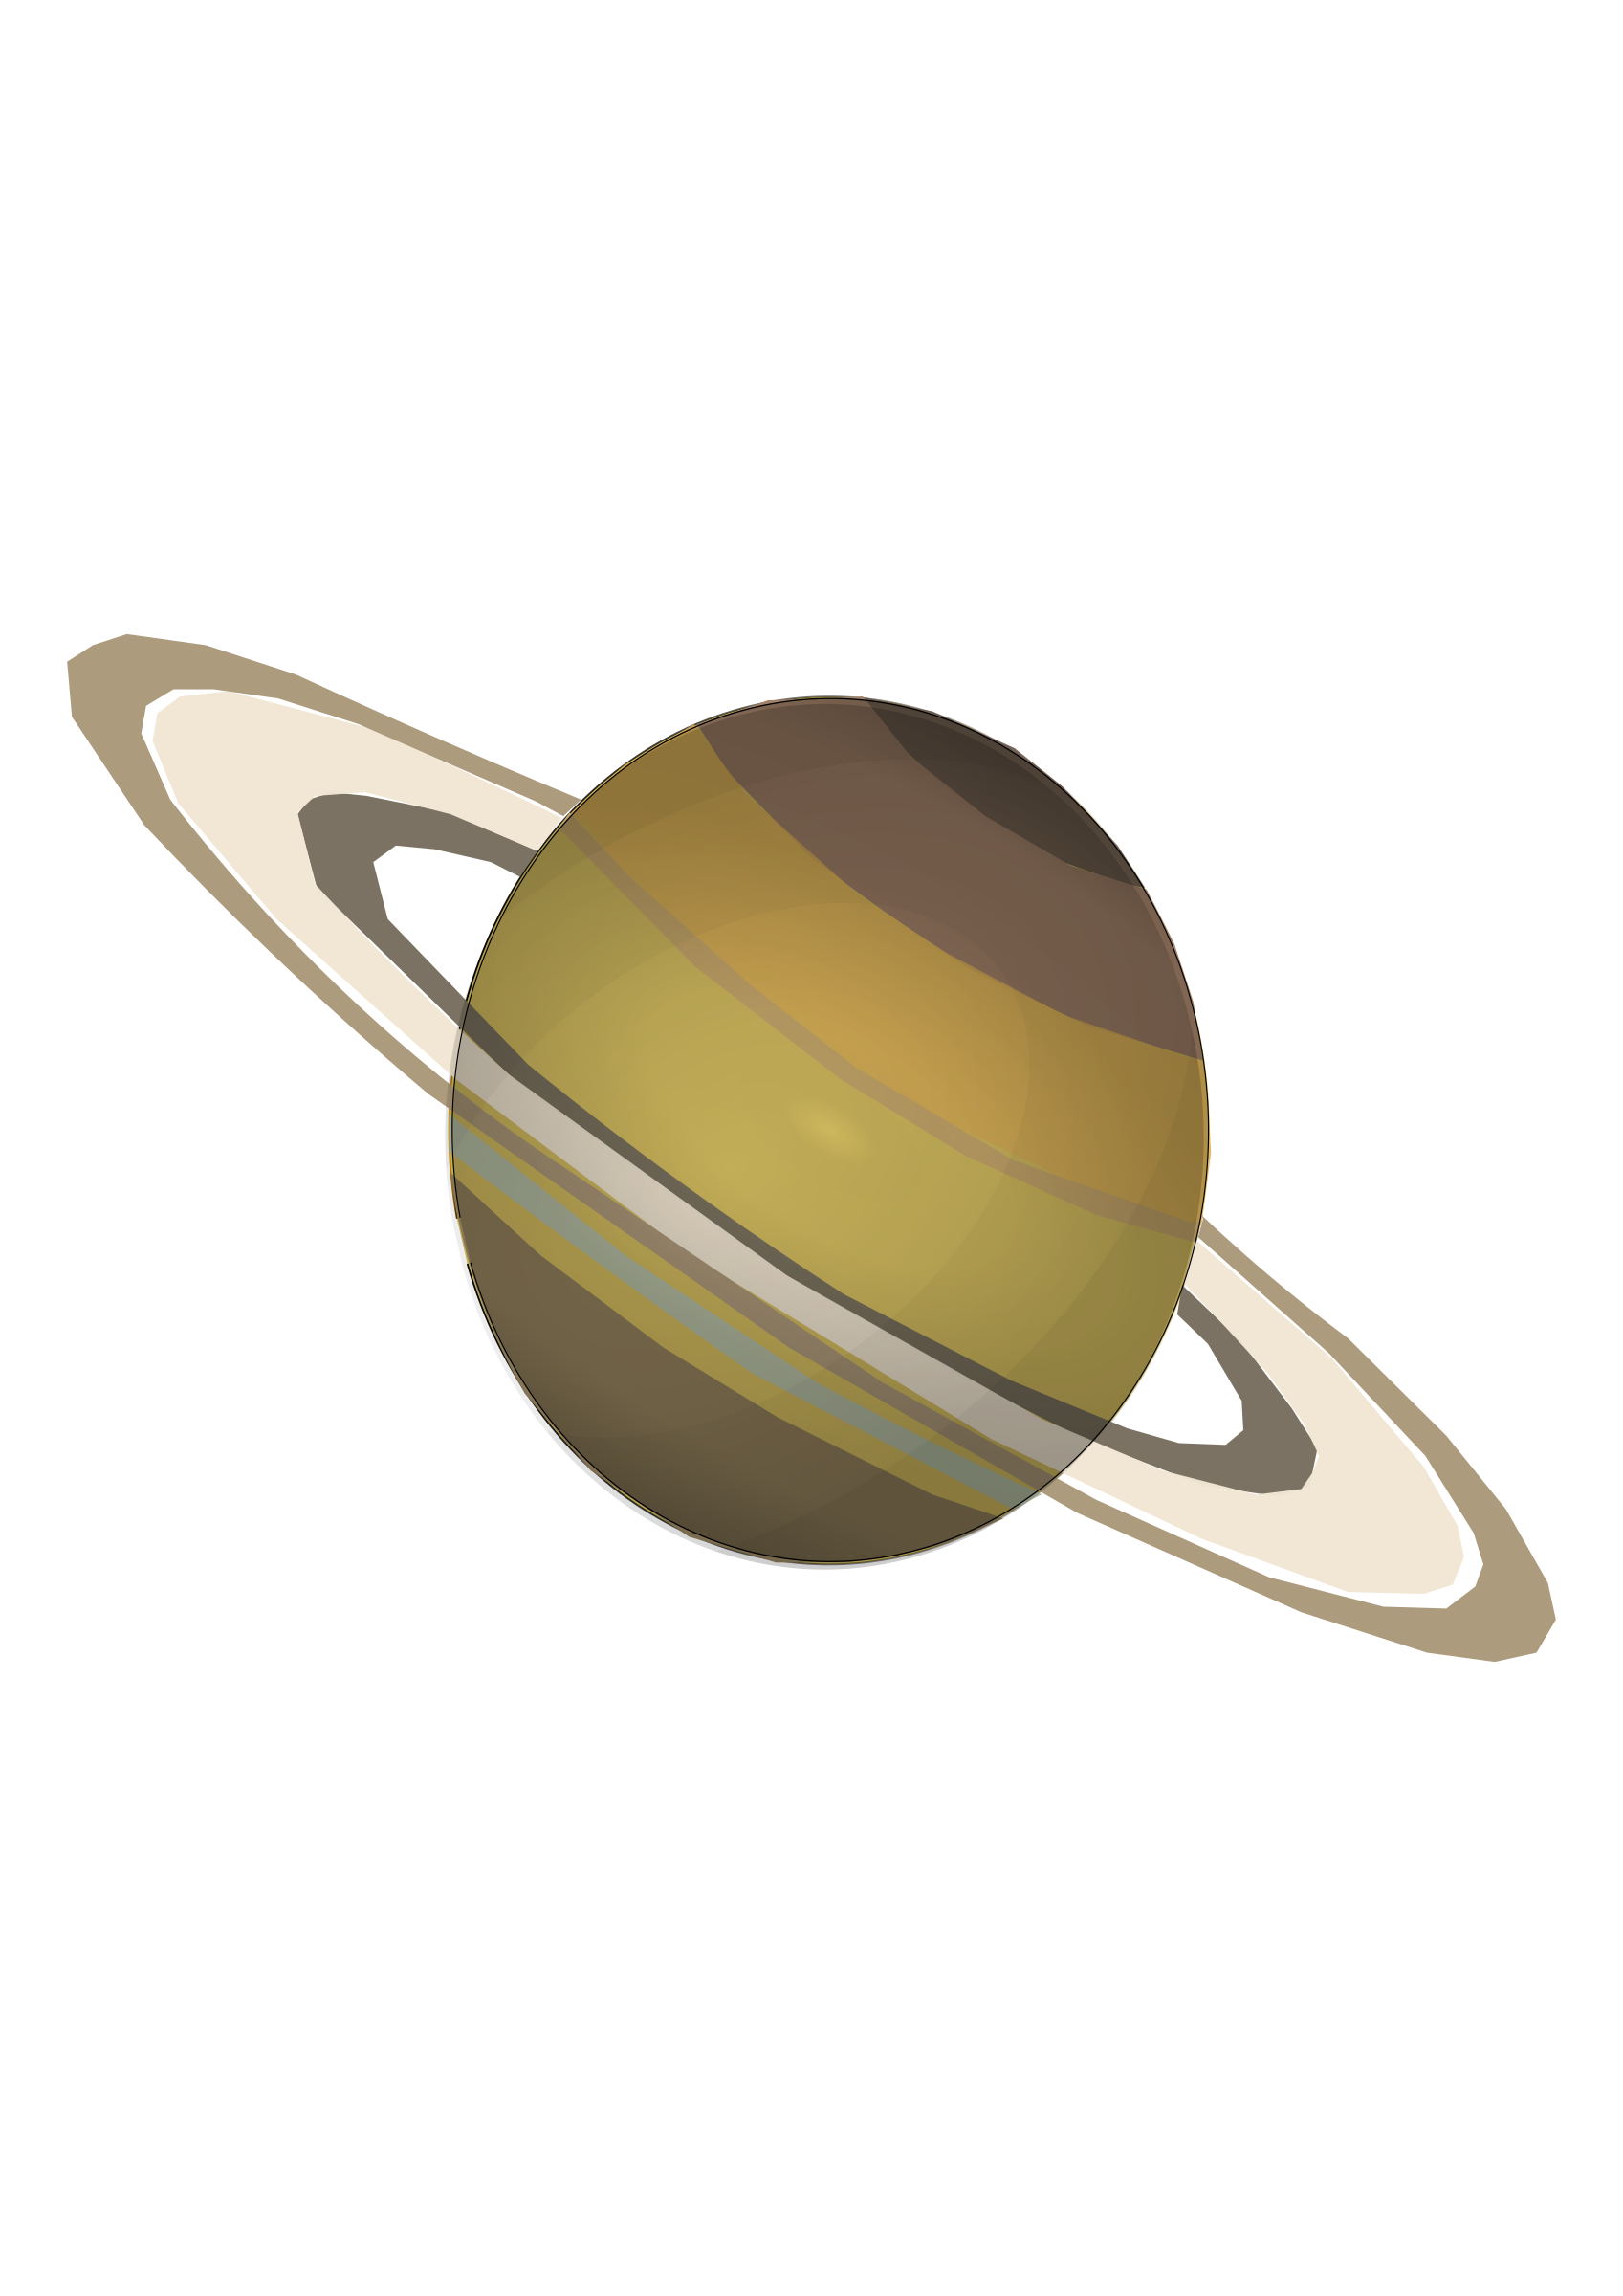 Planets clipart saturn. Planet big image png